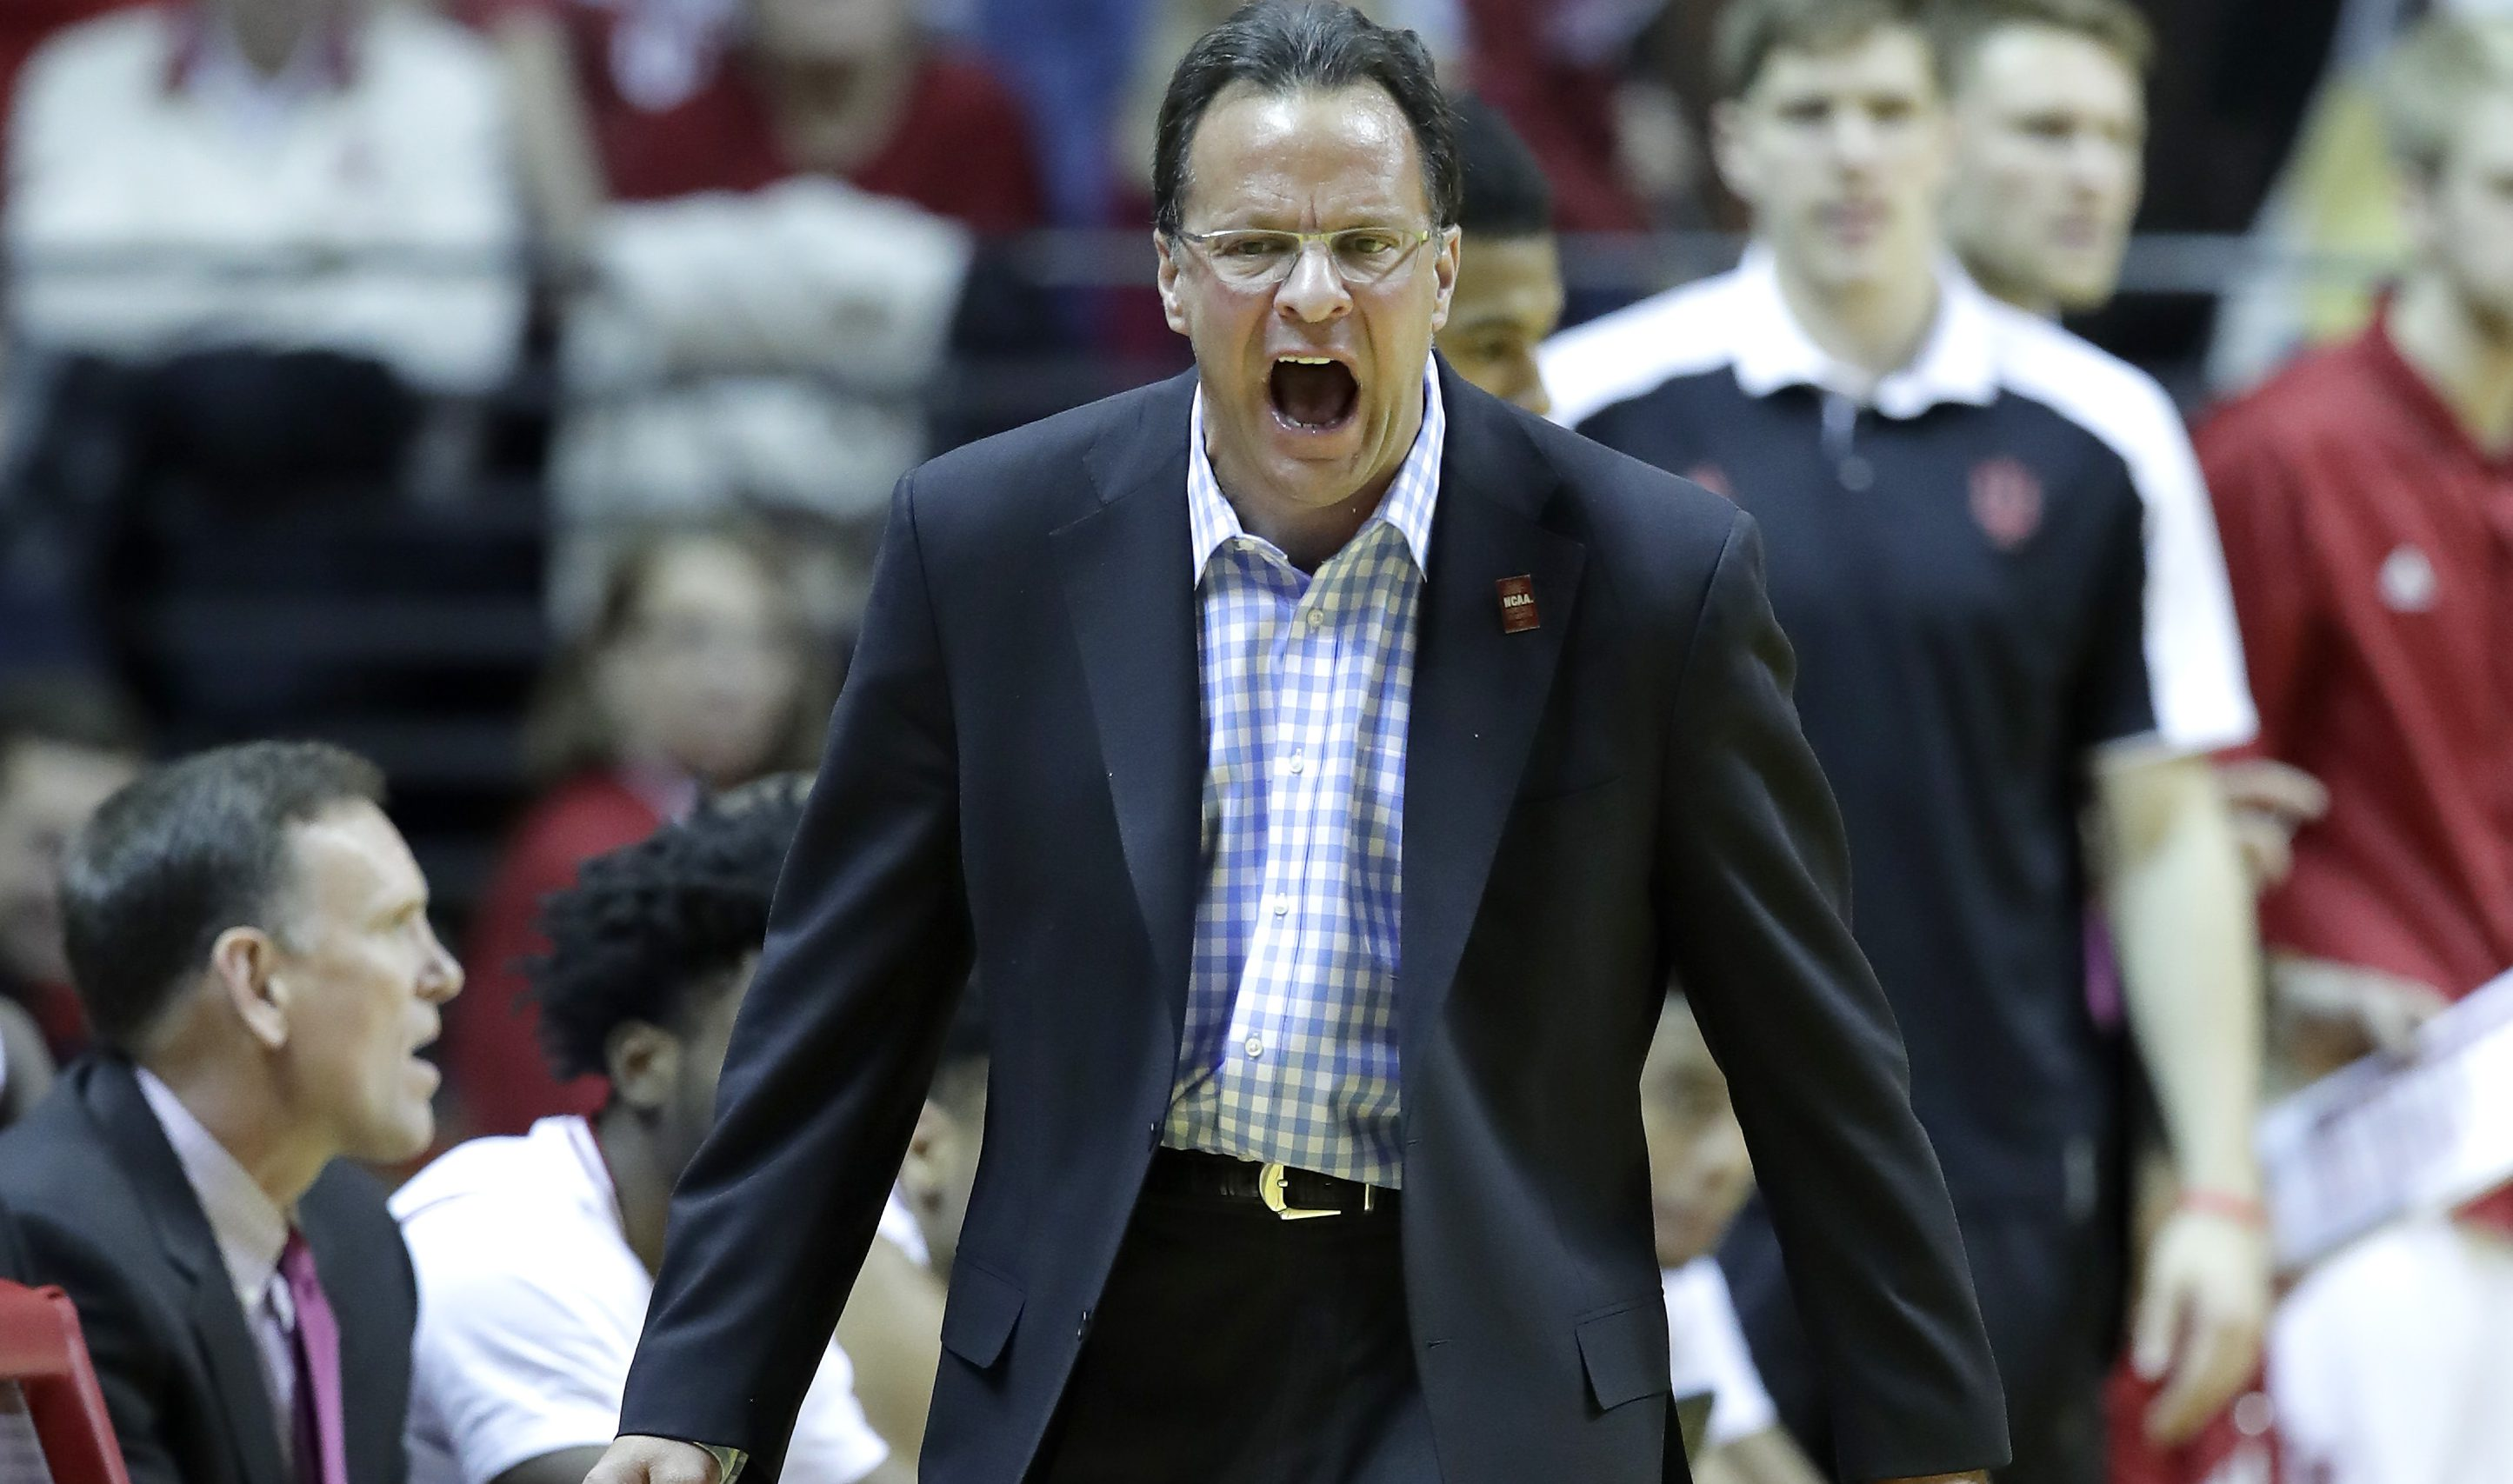 BLOOMINGTON, IN - DECEMBER 19:  Tom Crean the head coach of the Indiana Hoosiers gives instructions to his team during the game against the Delaware State Hornets at Assembly Hall on December 19, 2016 in Bloomington, Indiana.  (Photo by Andy Lyons/Getty Images)